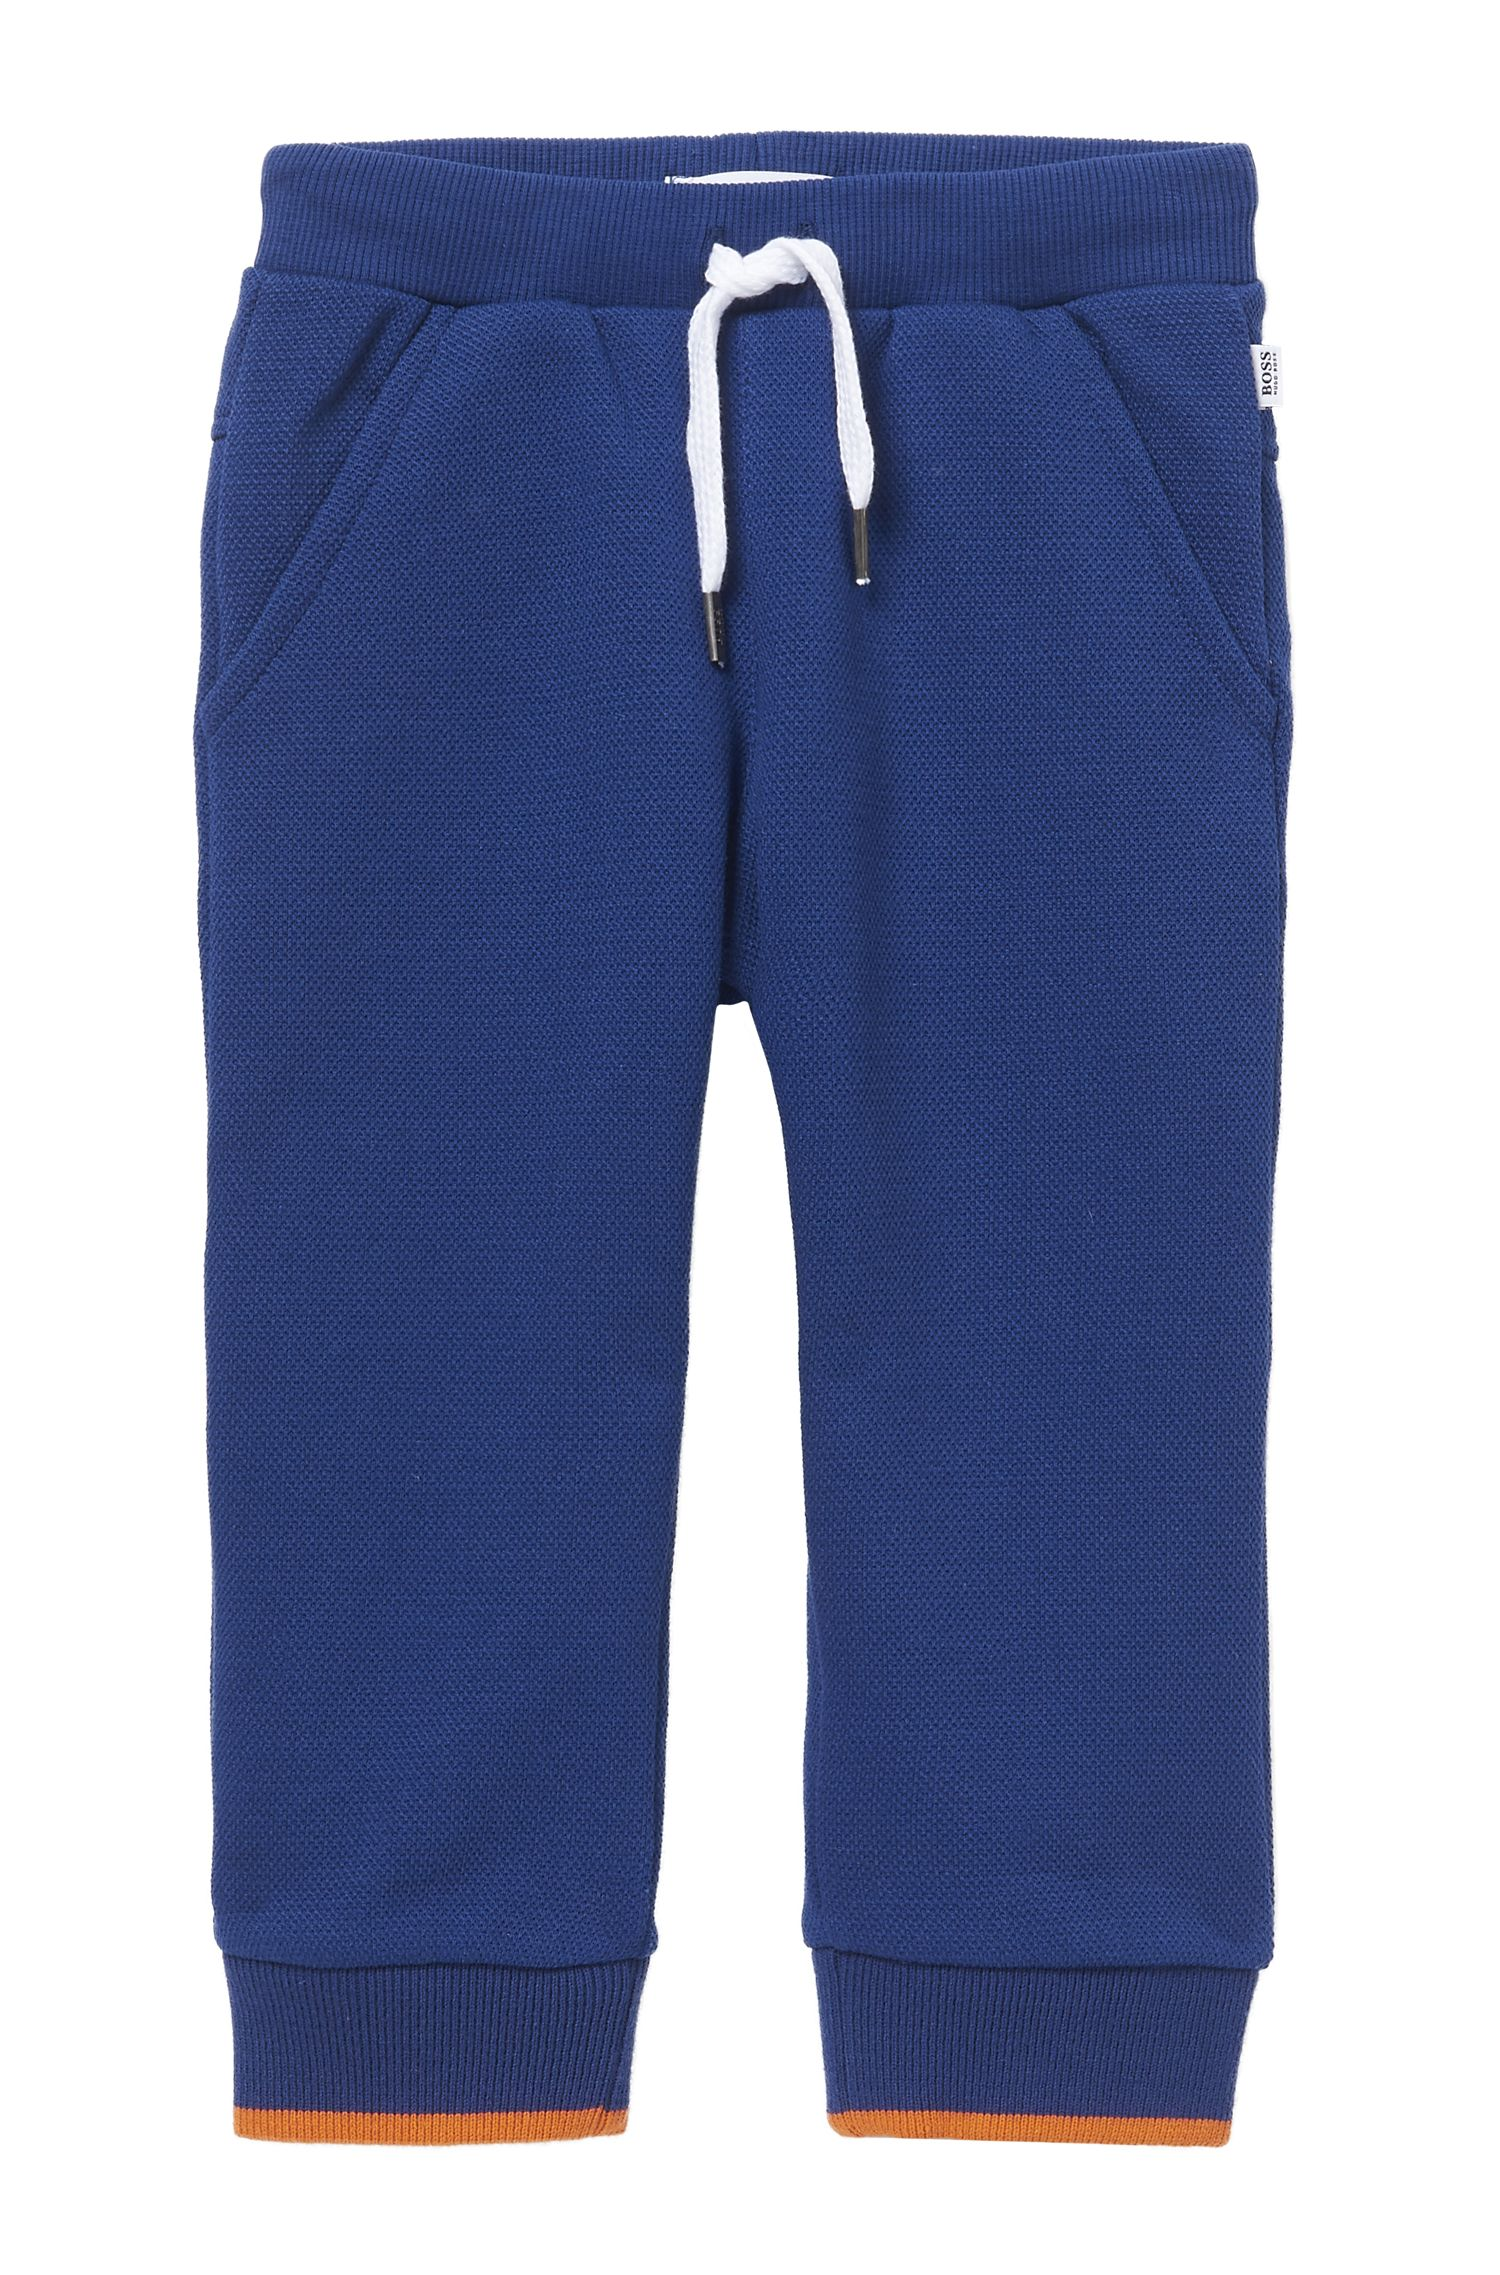 'J04246' | Toddler Cotton Pique Sweatpants